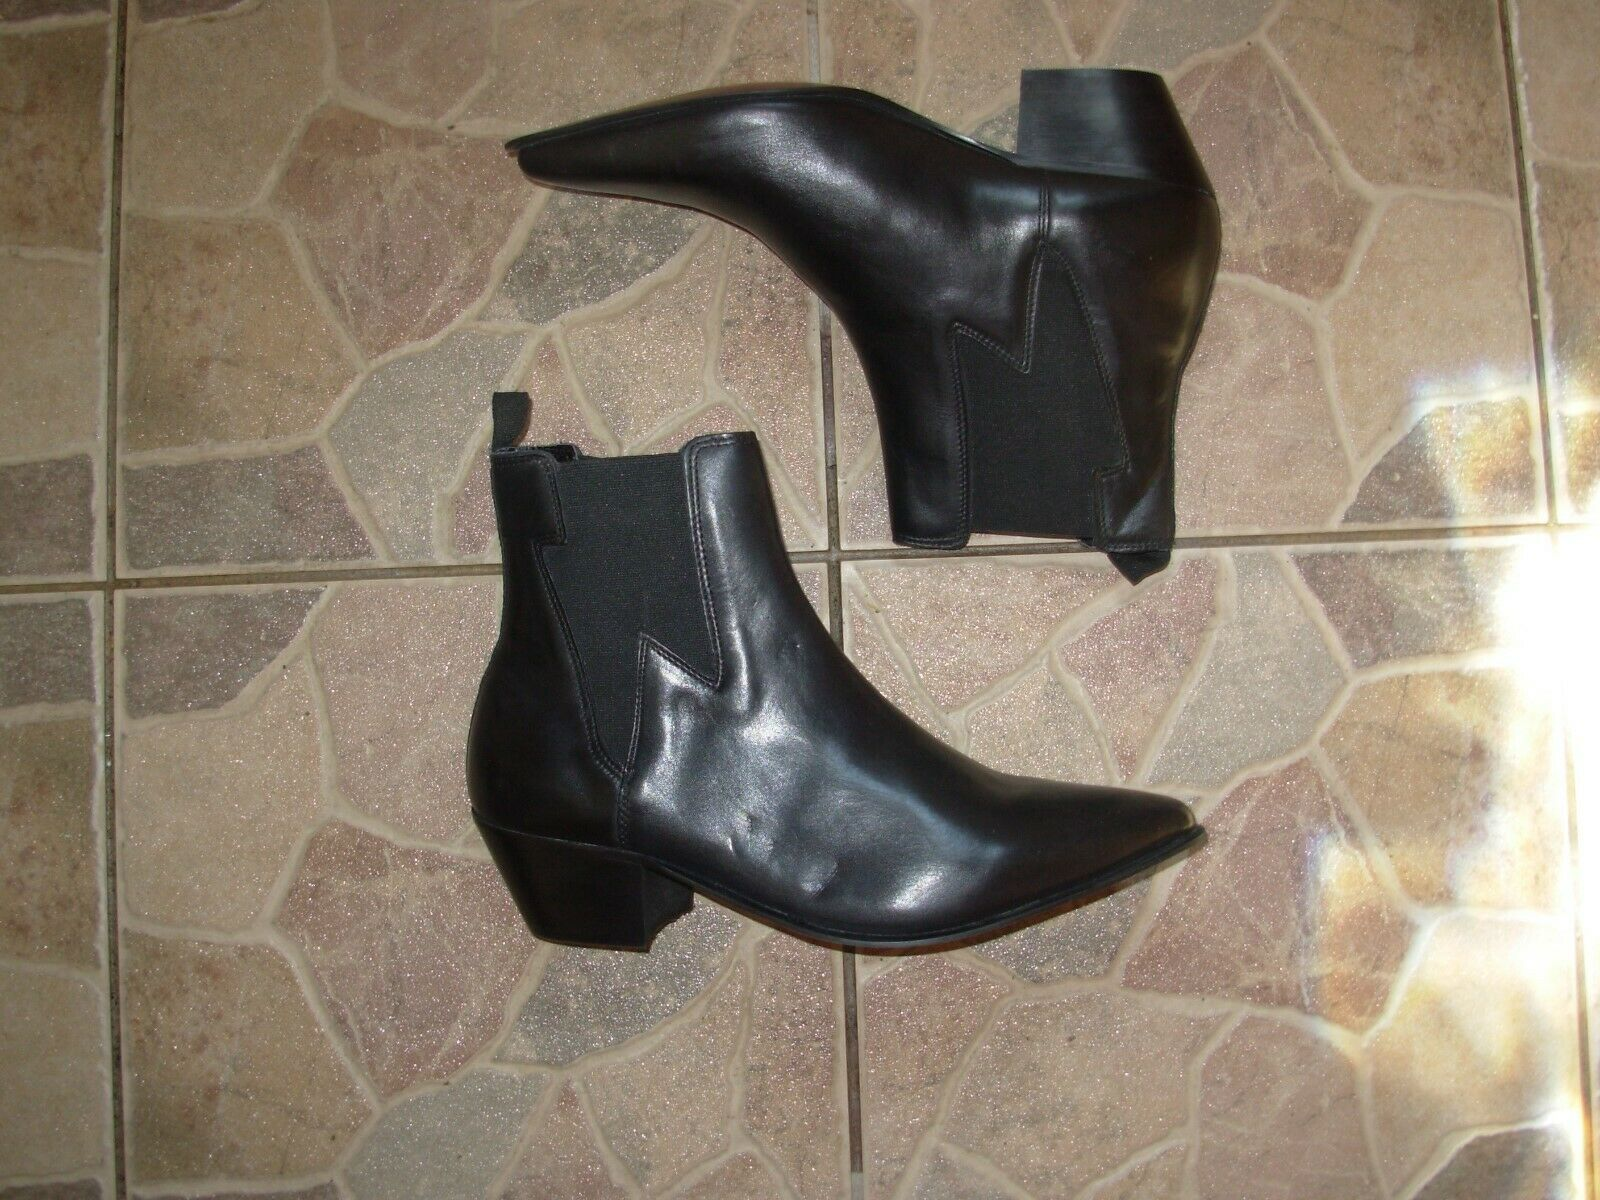 Black leather cowboy style boots by SoSo 9 uk 43 eu